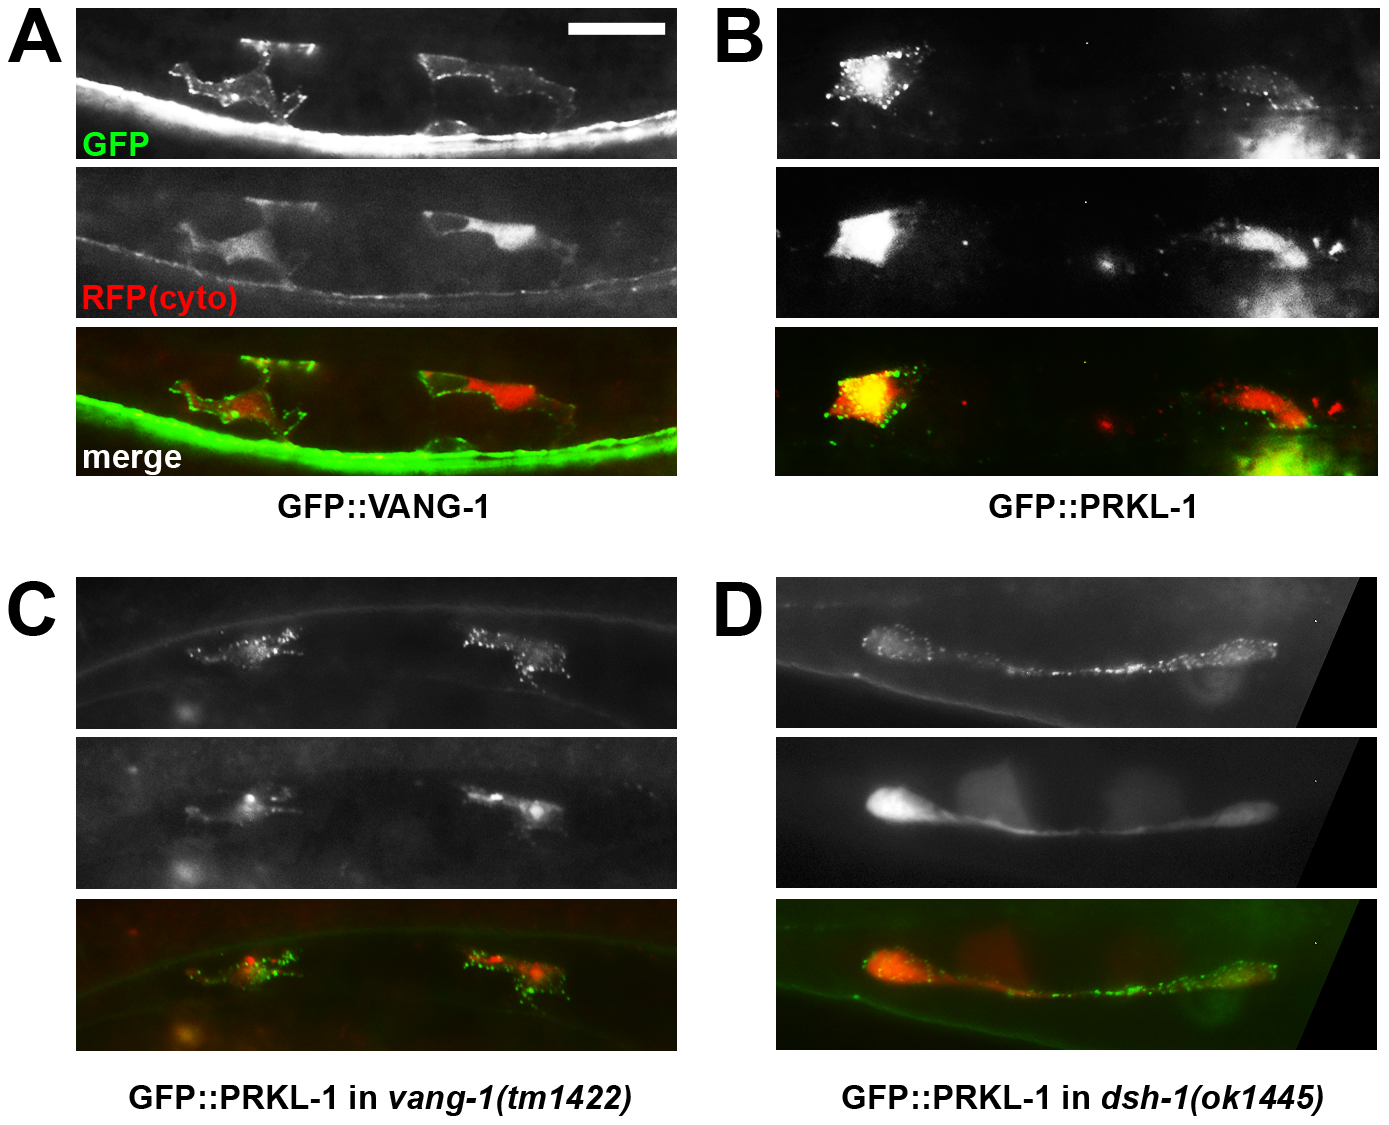 PRKL-1 and VANG-1-GFP fusions in VC neurons are localized to the plasma membrane.